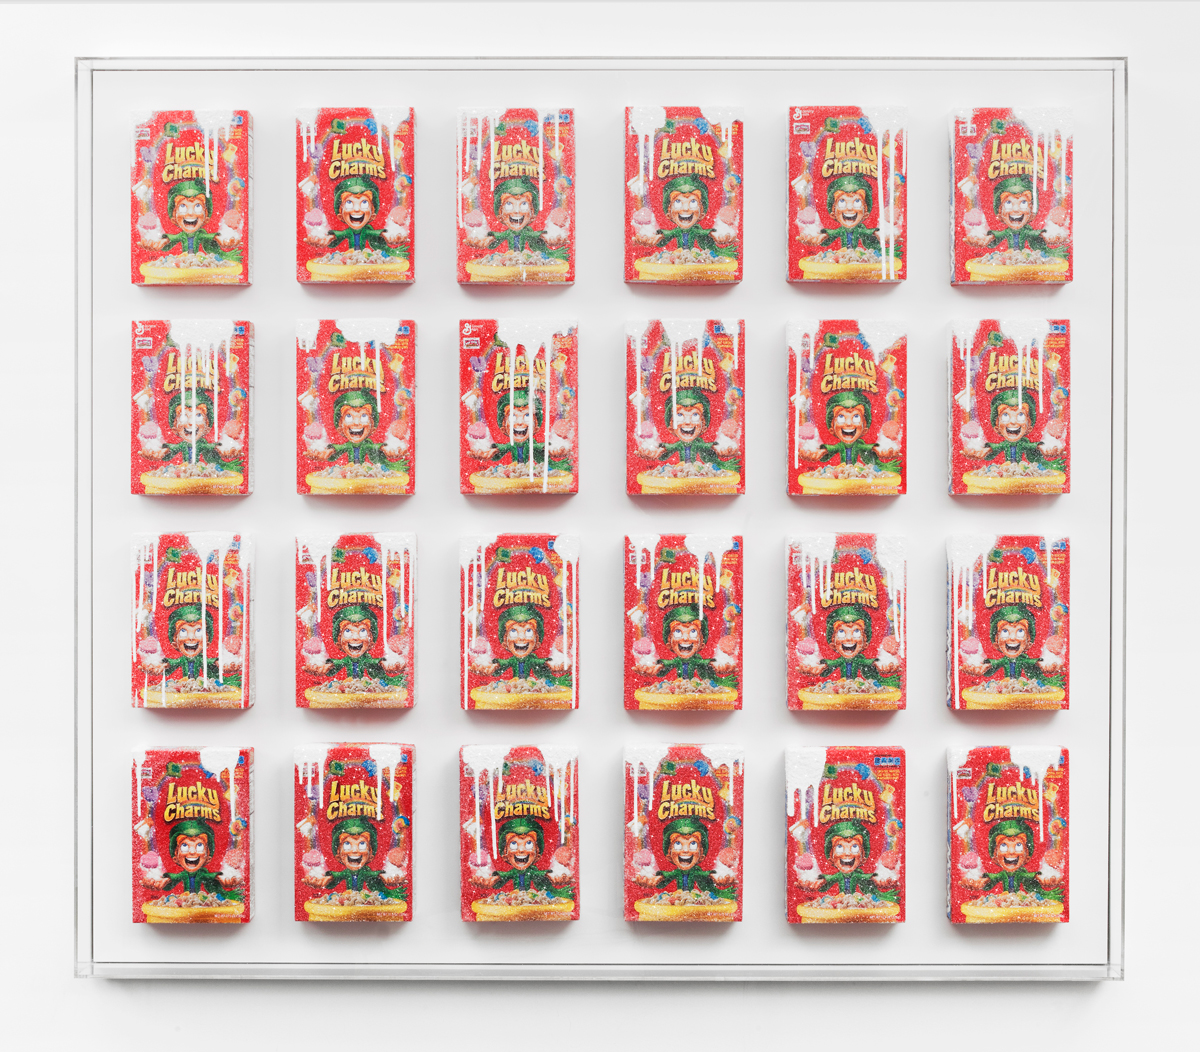 9-Hovnanian-Rachel-Lee_Magically-Delicious_2014_Cereal-boxes-acrylic-crushed-glass-wood_67.5-x-59-x-4.5-in.jpg